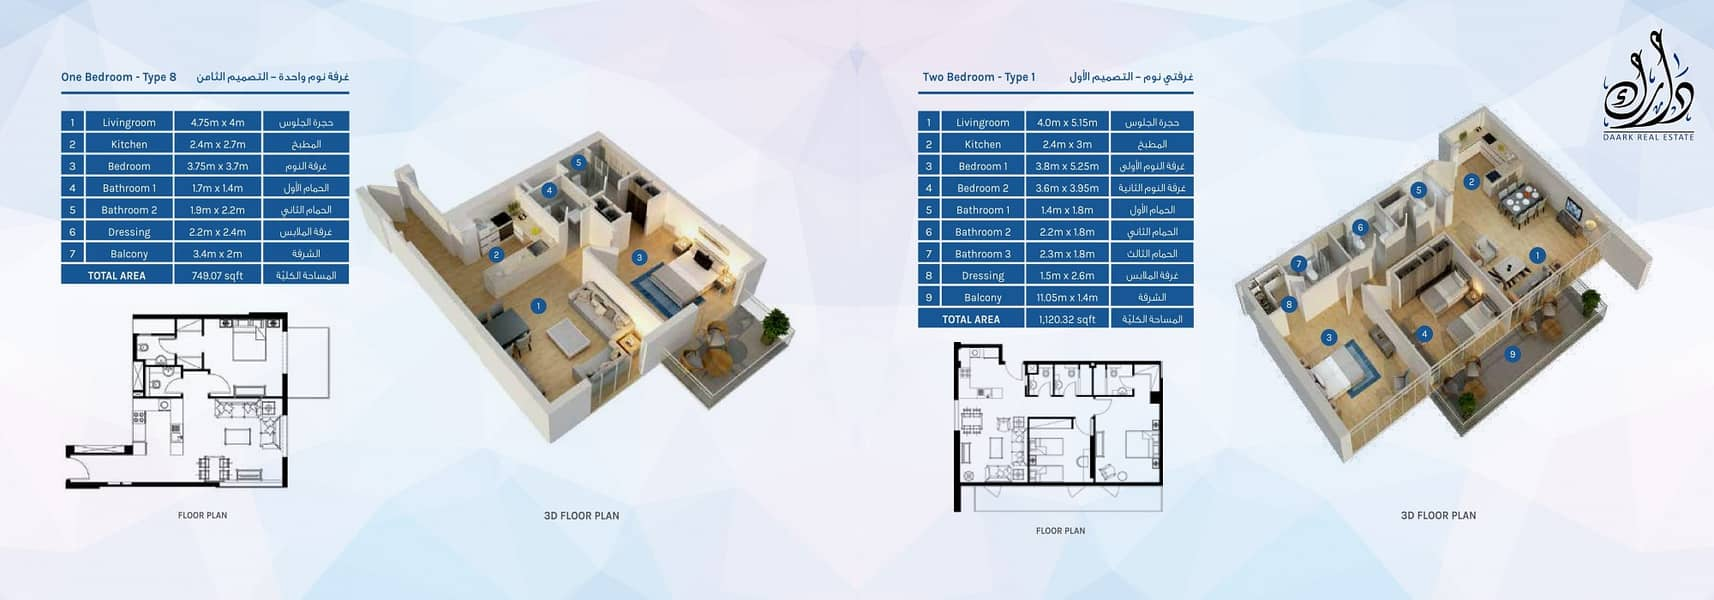 10 Get 2 bedroom apartment near metro station with 4 year  payment plan!